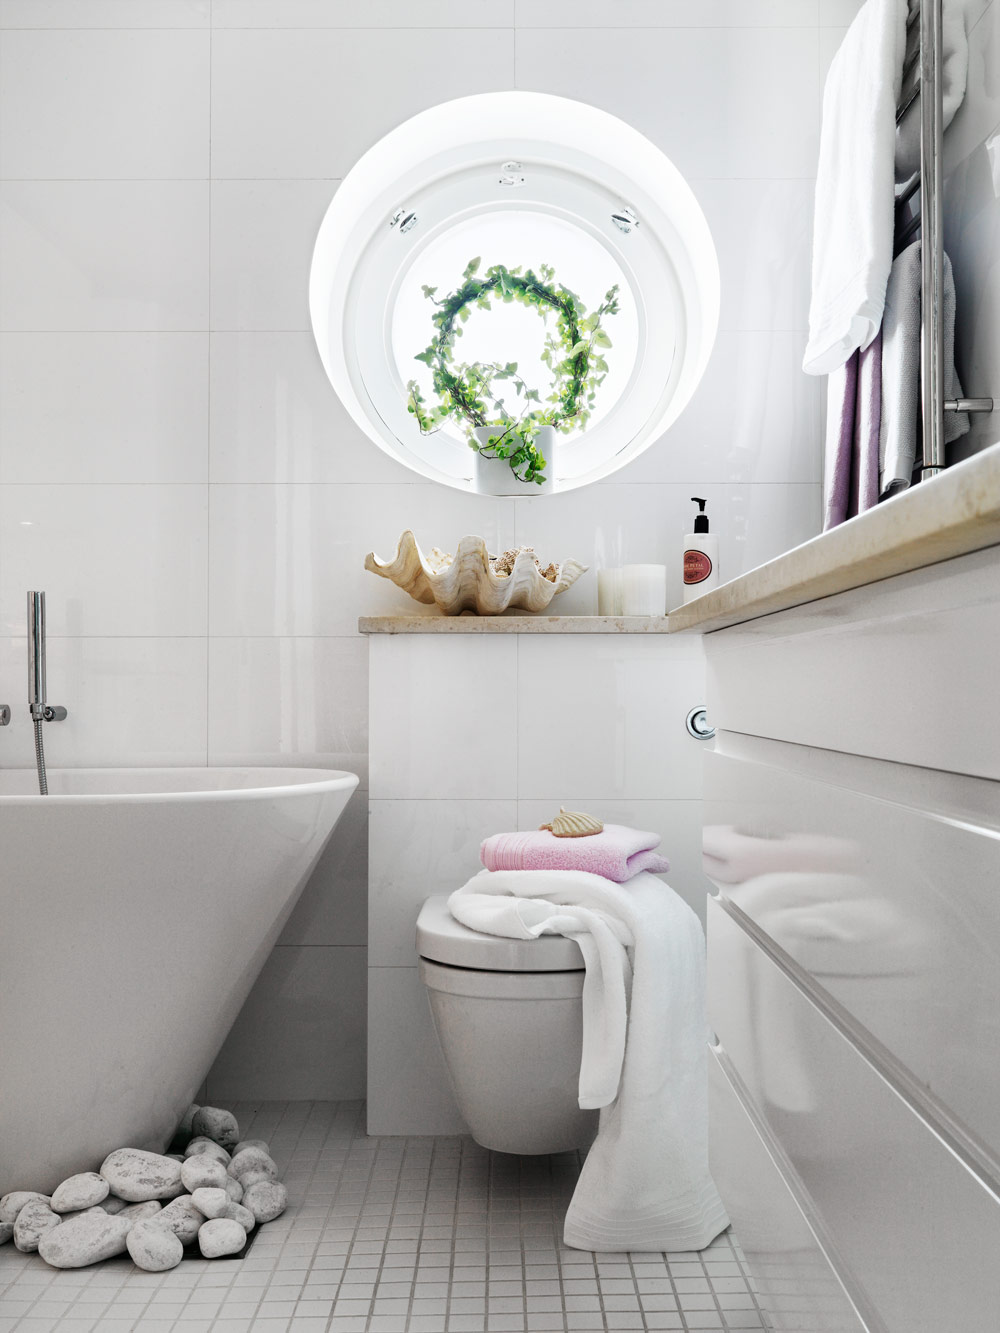 Stylish small bathroom with an unusual decor digsdigs for Mini bathroom ideas